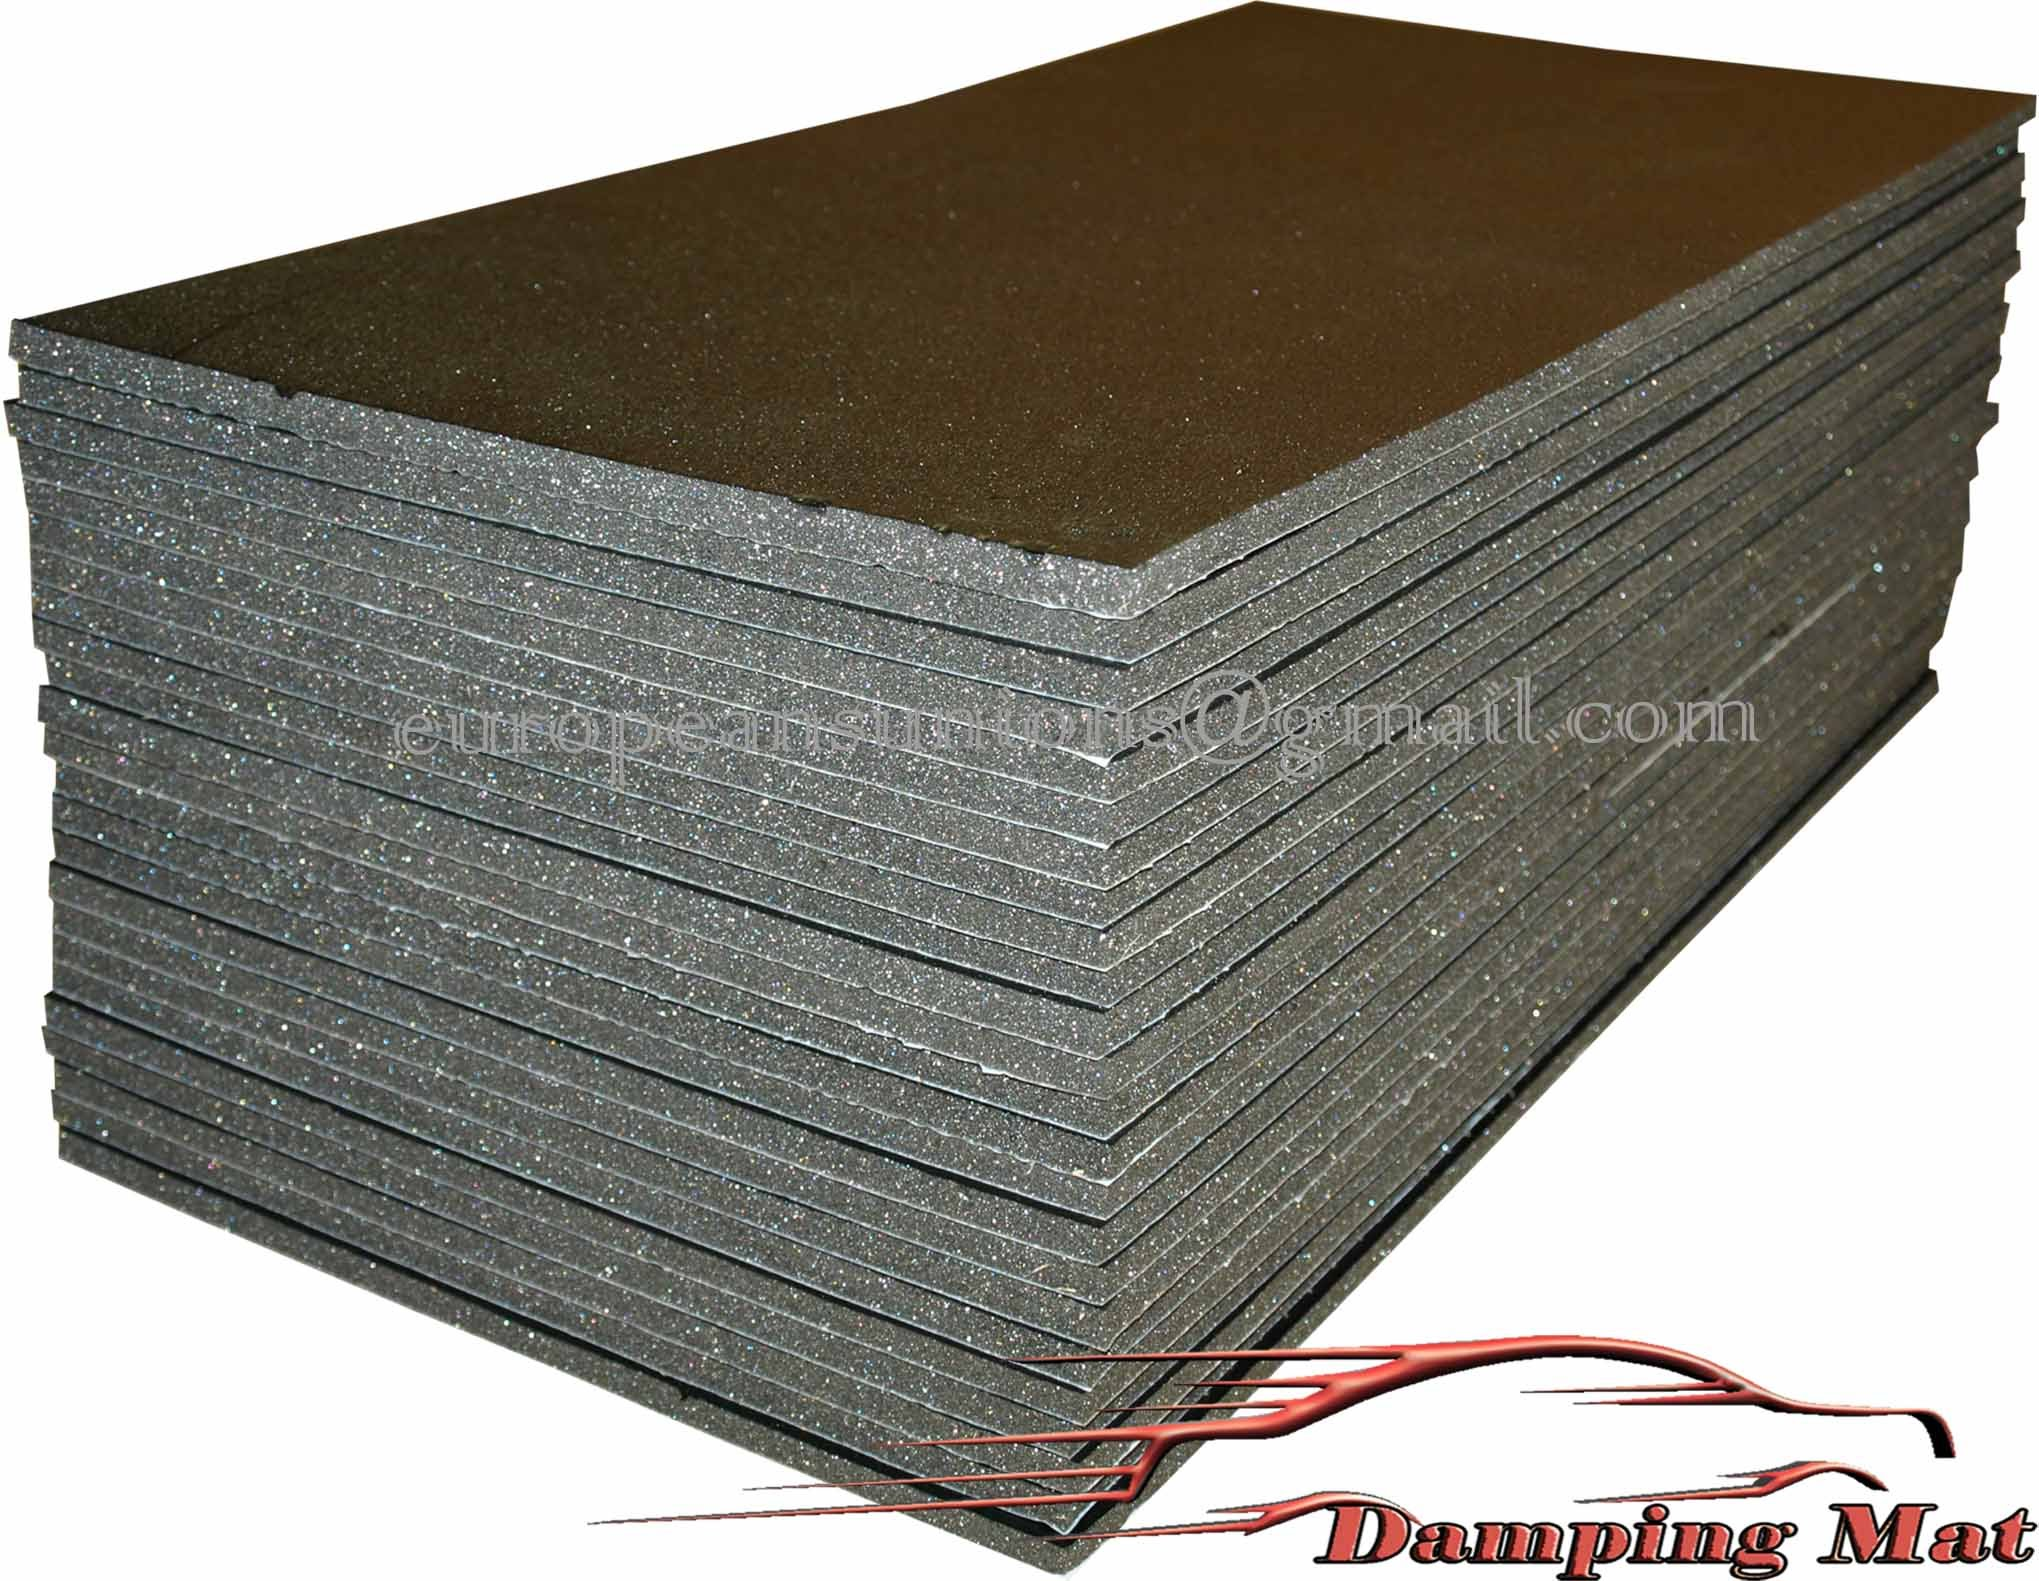 Sound Insulation Materials : Sq ft auto truck car vehicle sound proofing deadening